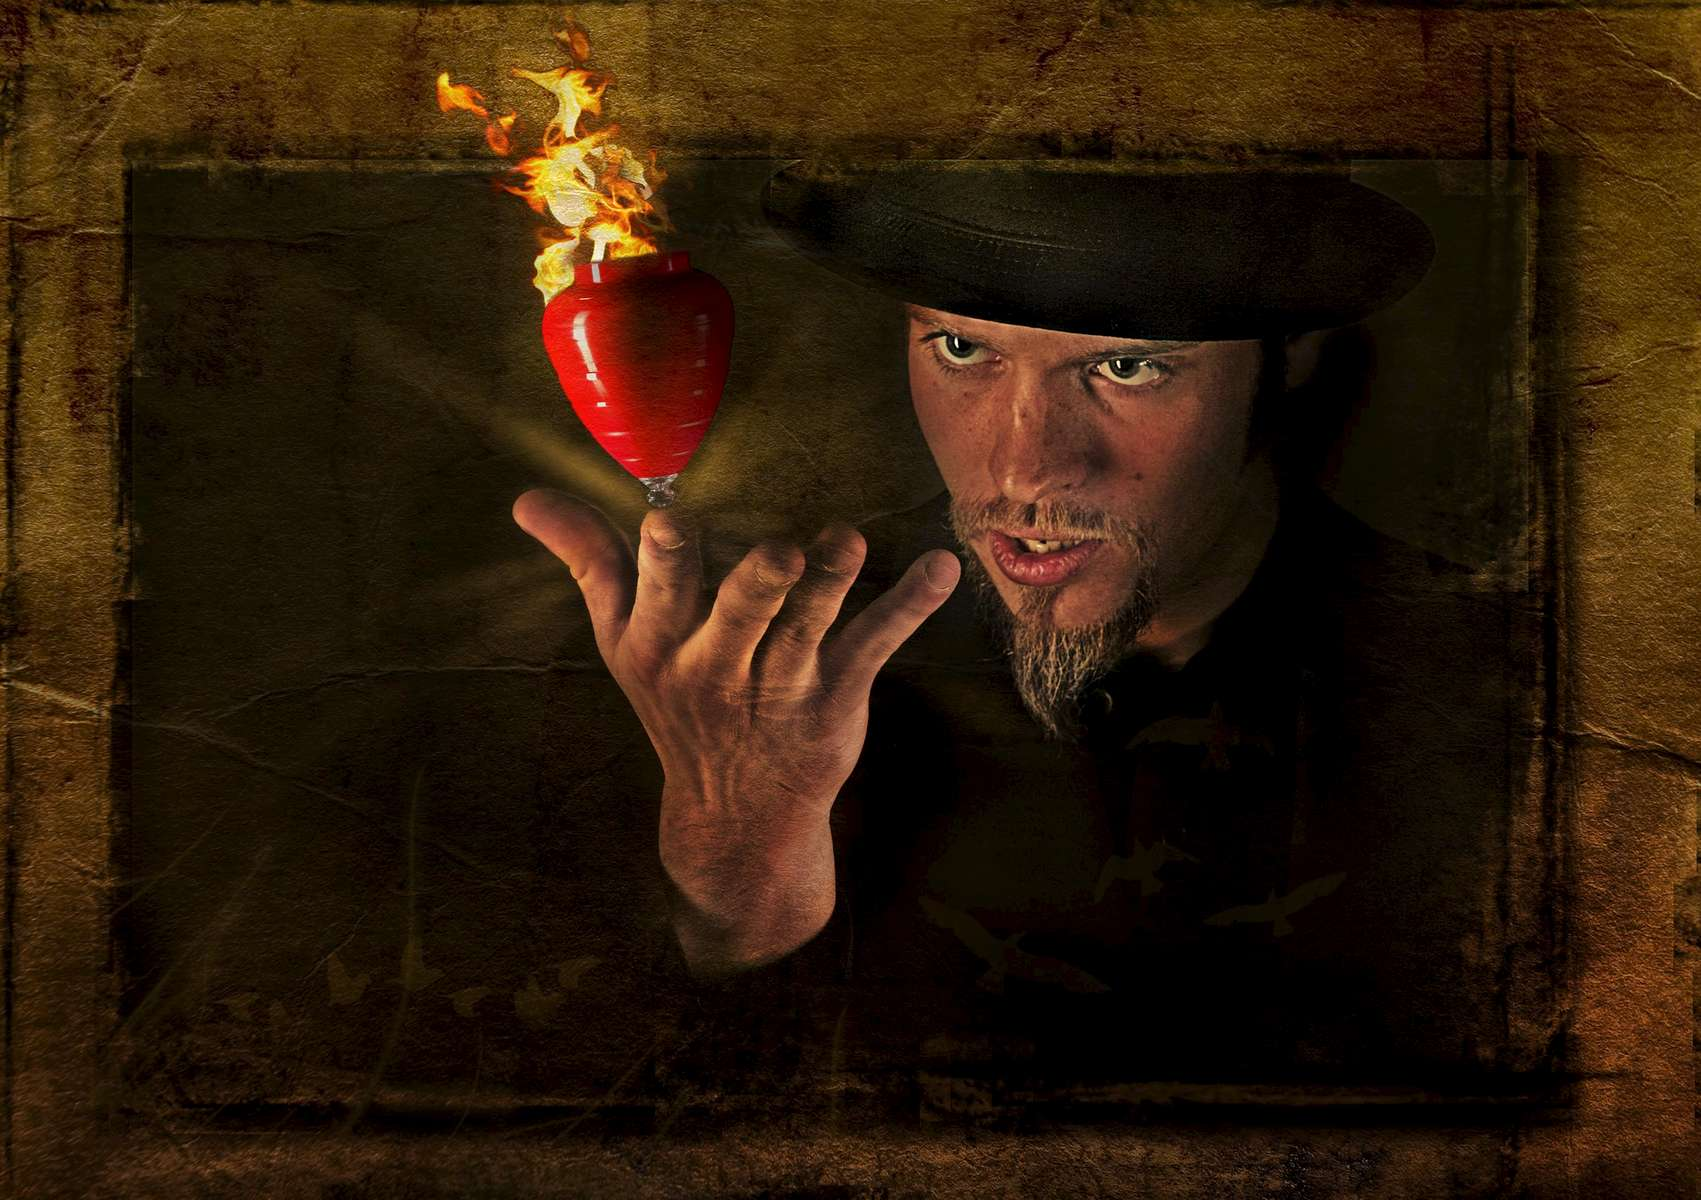 A photo illustration of performance artist, Eric Girardi, of Bending Gravity Entertainment.